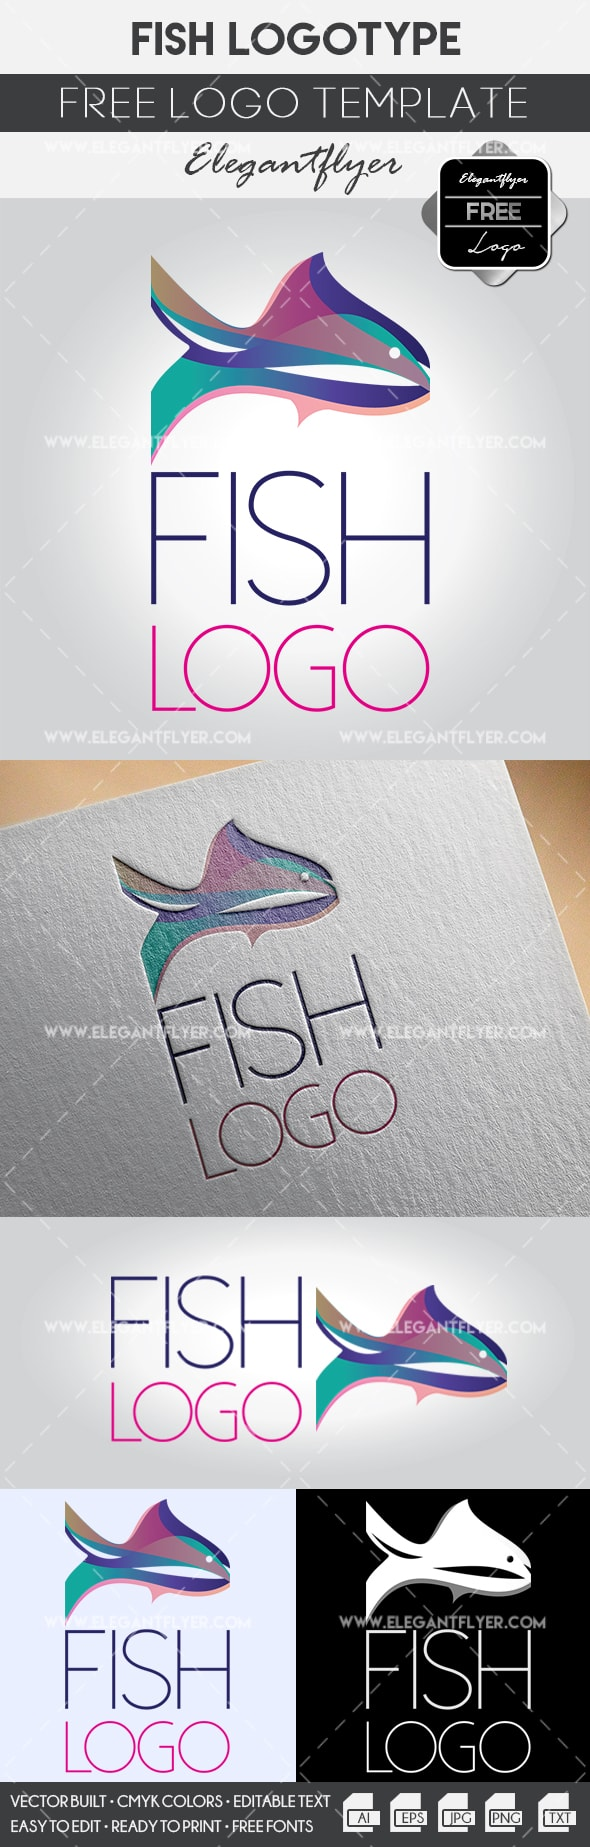 Template for Fish Logo Inspiration